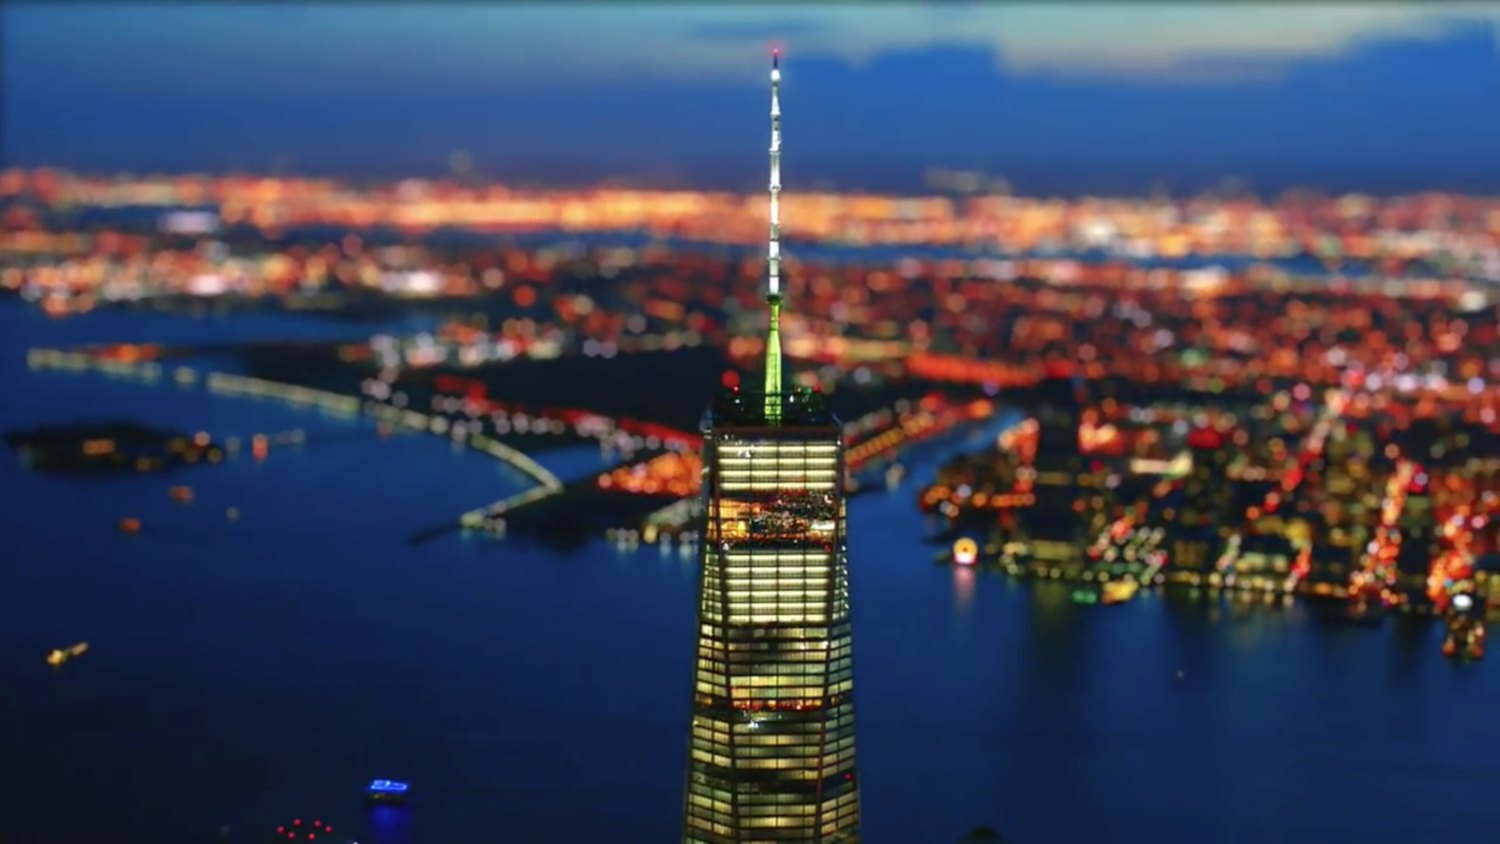 One World Trade Center's soaring spire is the focus of the colourful image above as the lights of Jersey City illuminate the background.